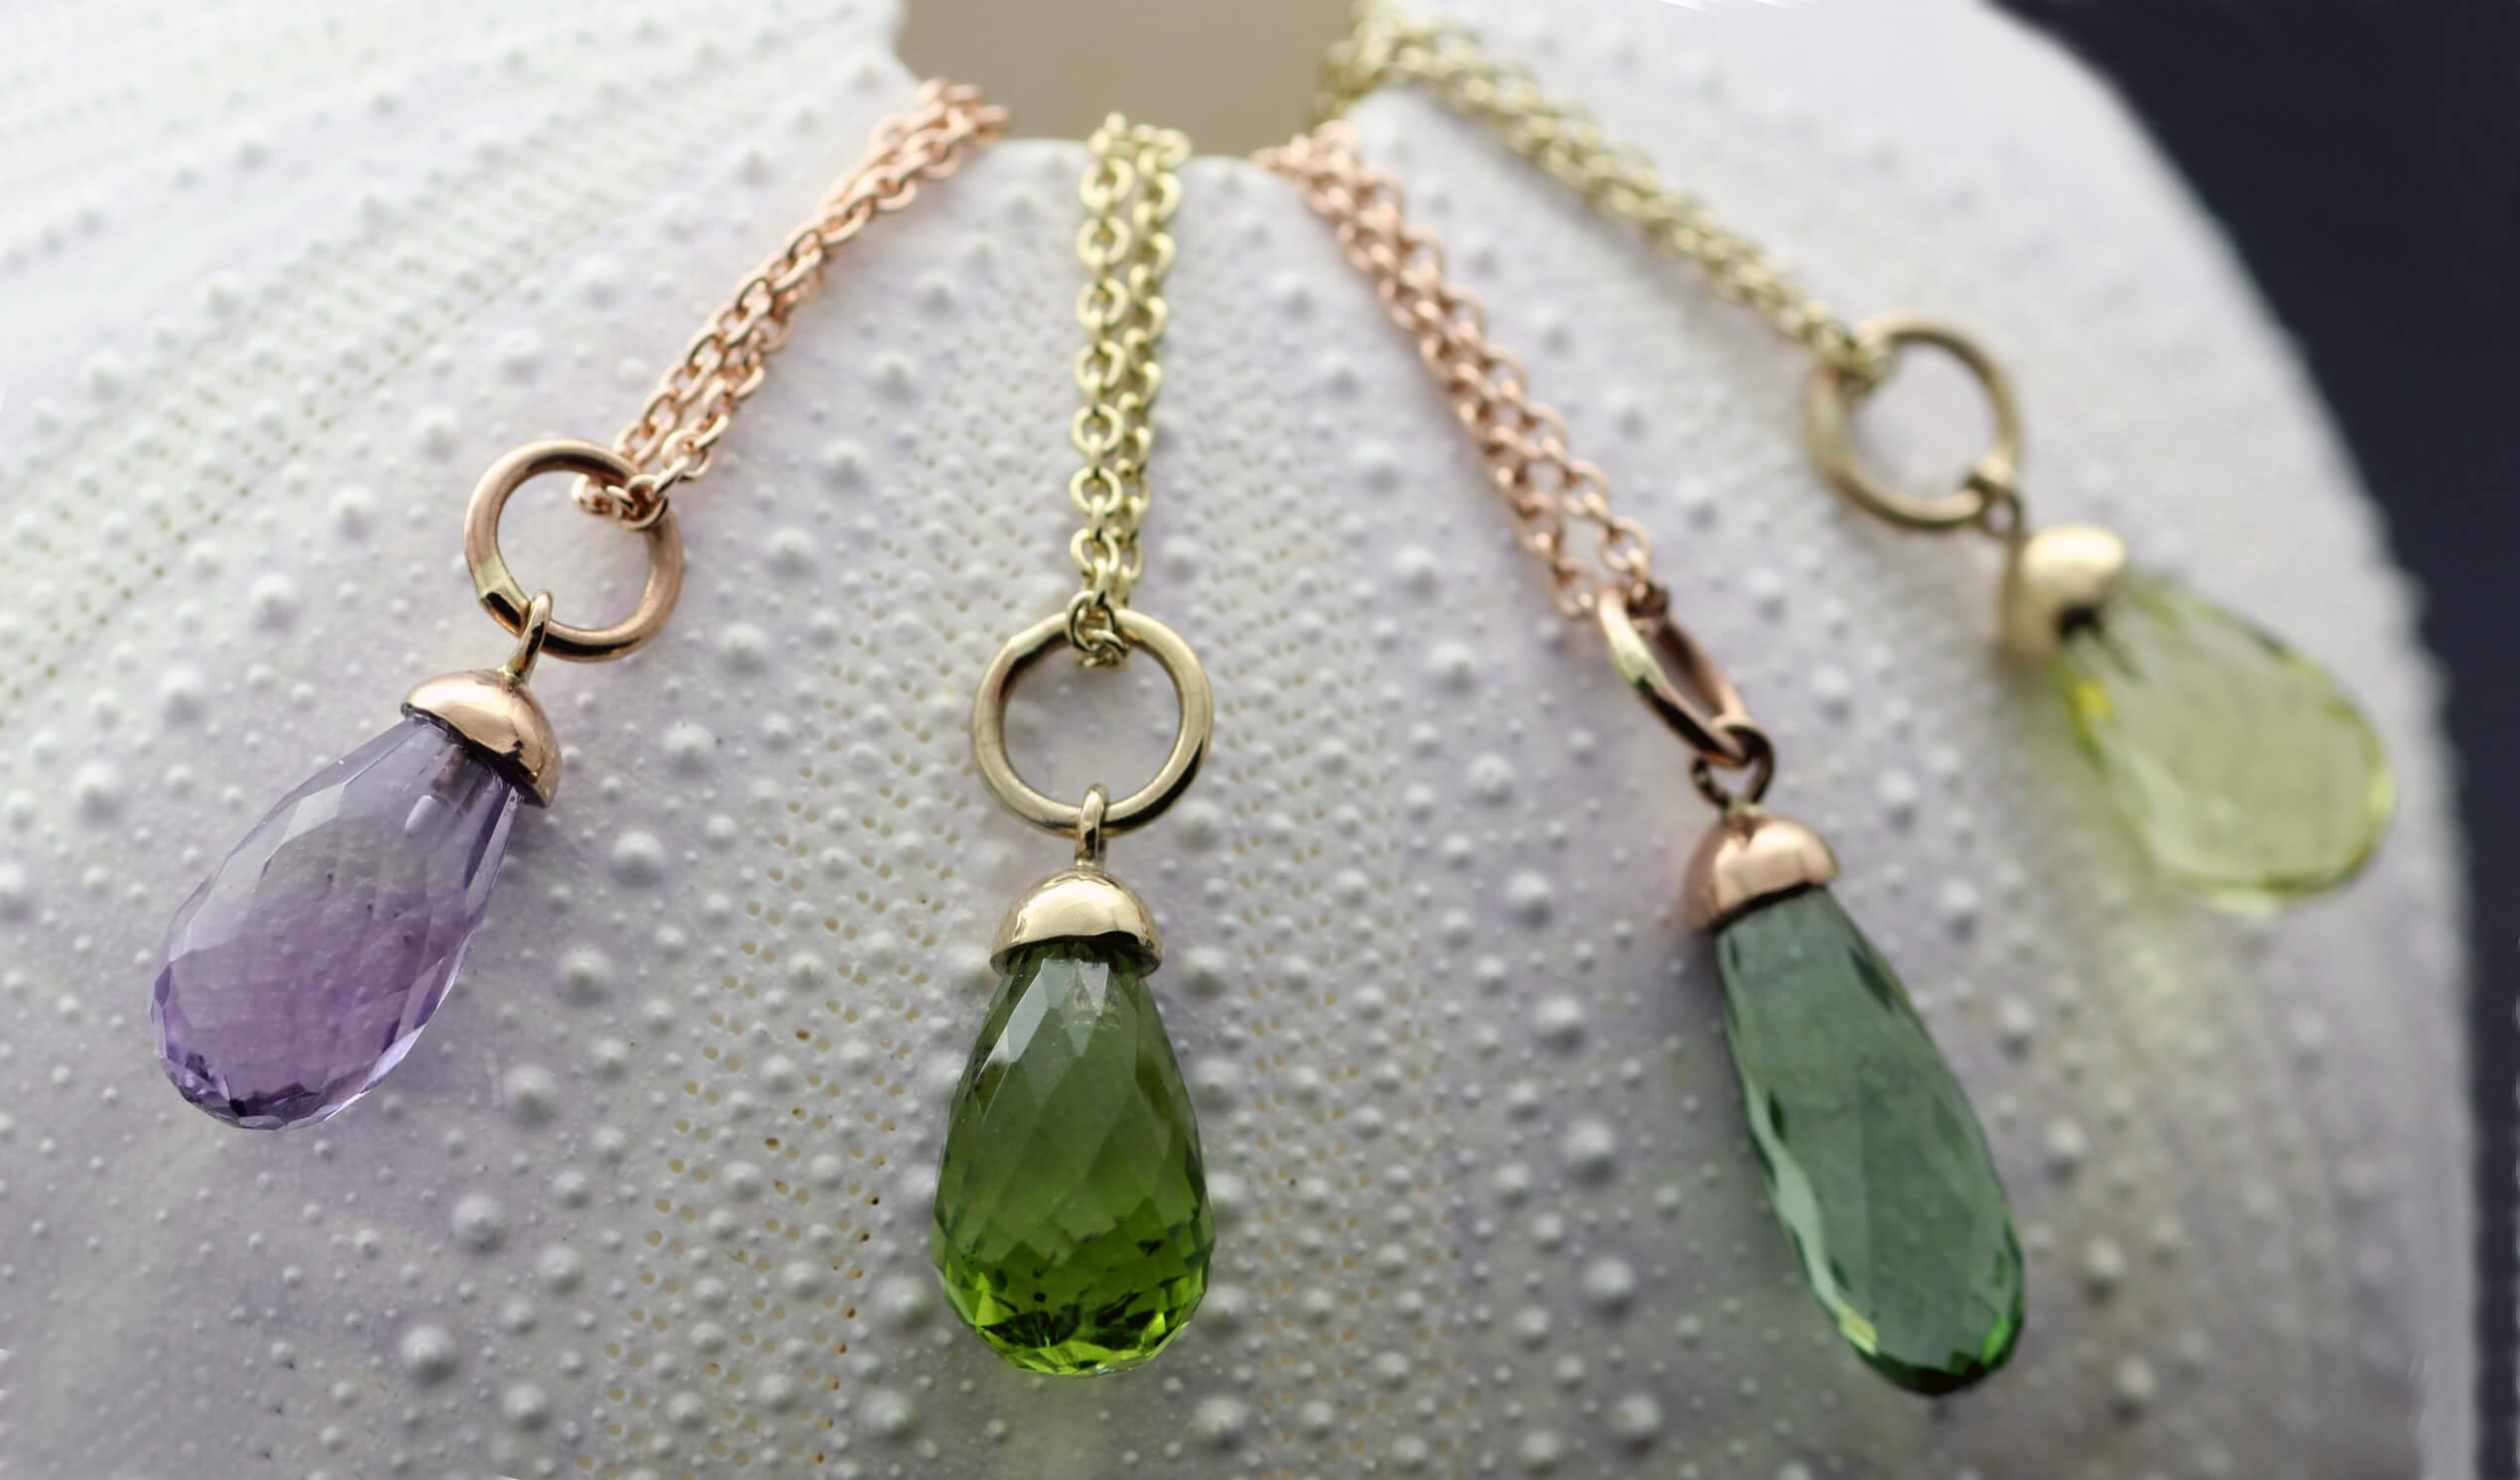 Briolette cut gemstones set in Rose Gold and Yellow Gold necklaces